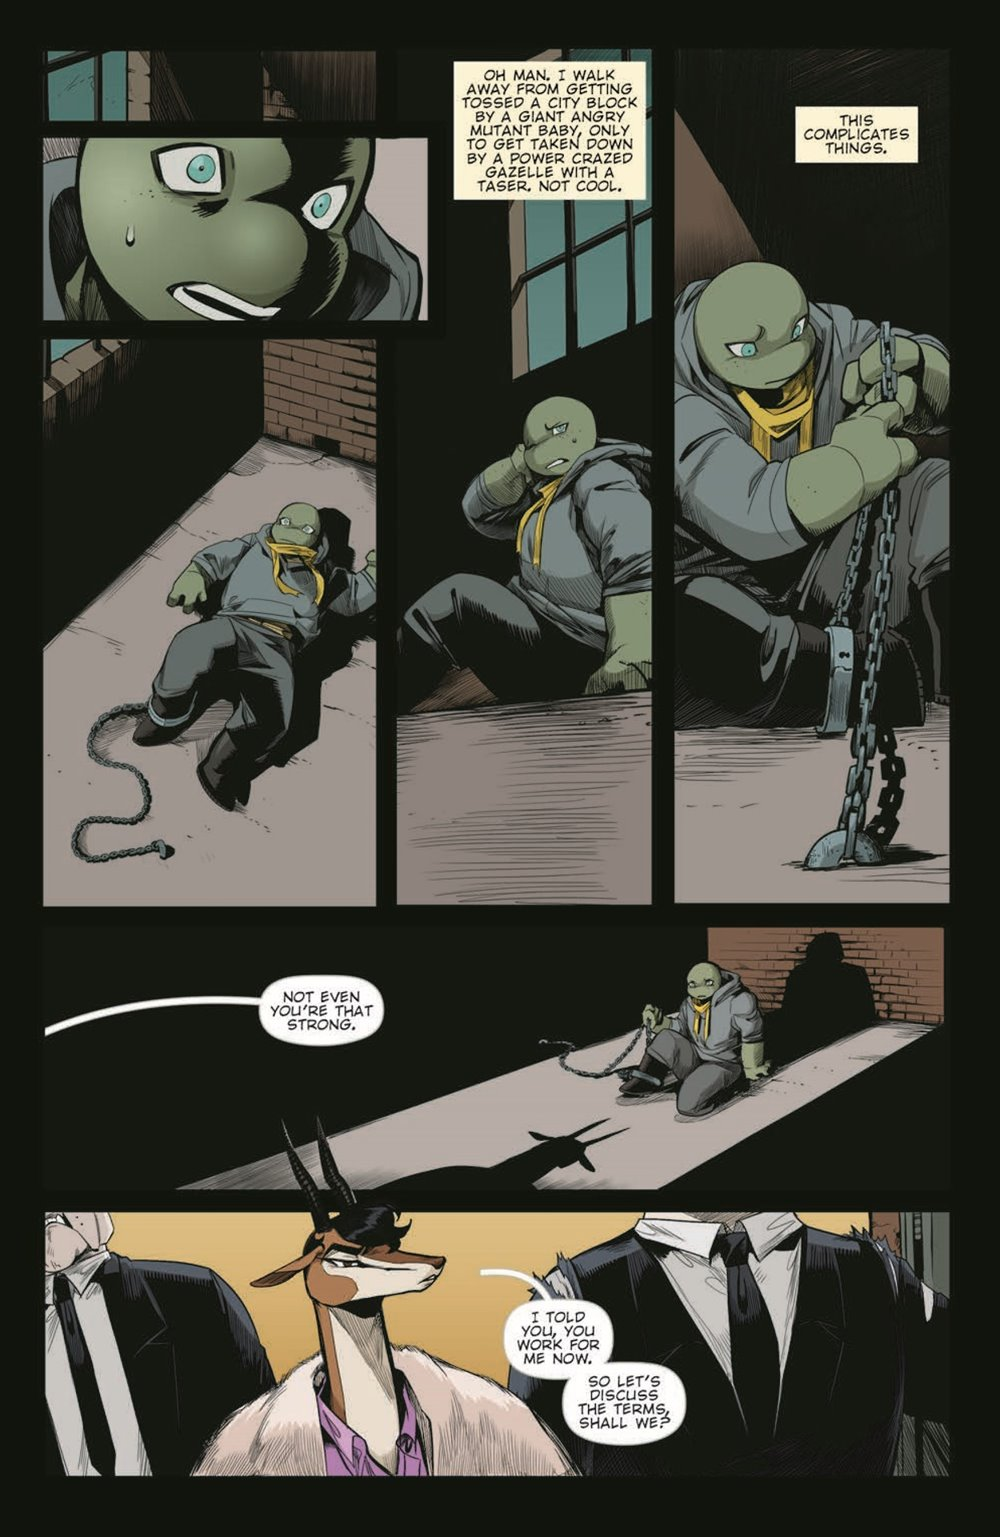 TMNT-JennikaII_06_pr-4 ComicList Previews: TEENAGE MUTANT NINJA TURTLES JENNIKA II #6 (OF 6)